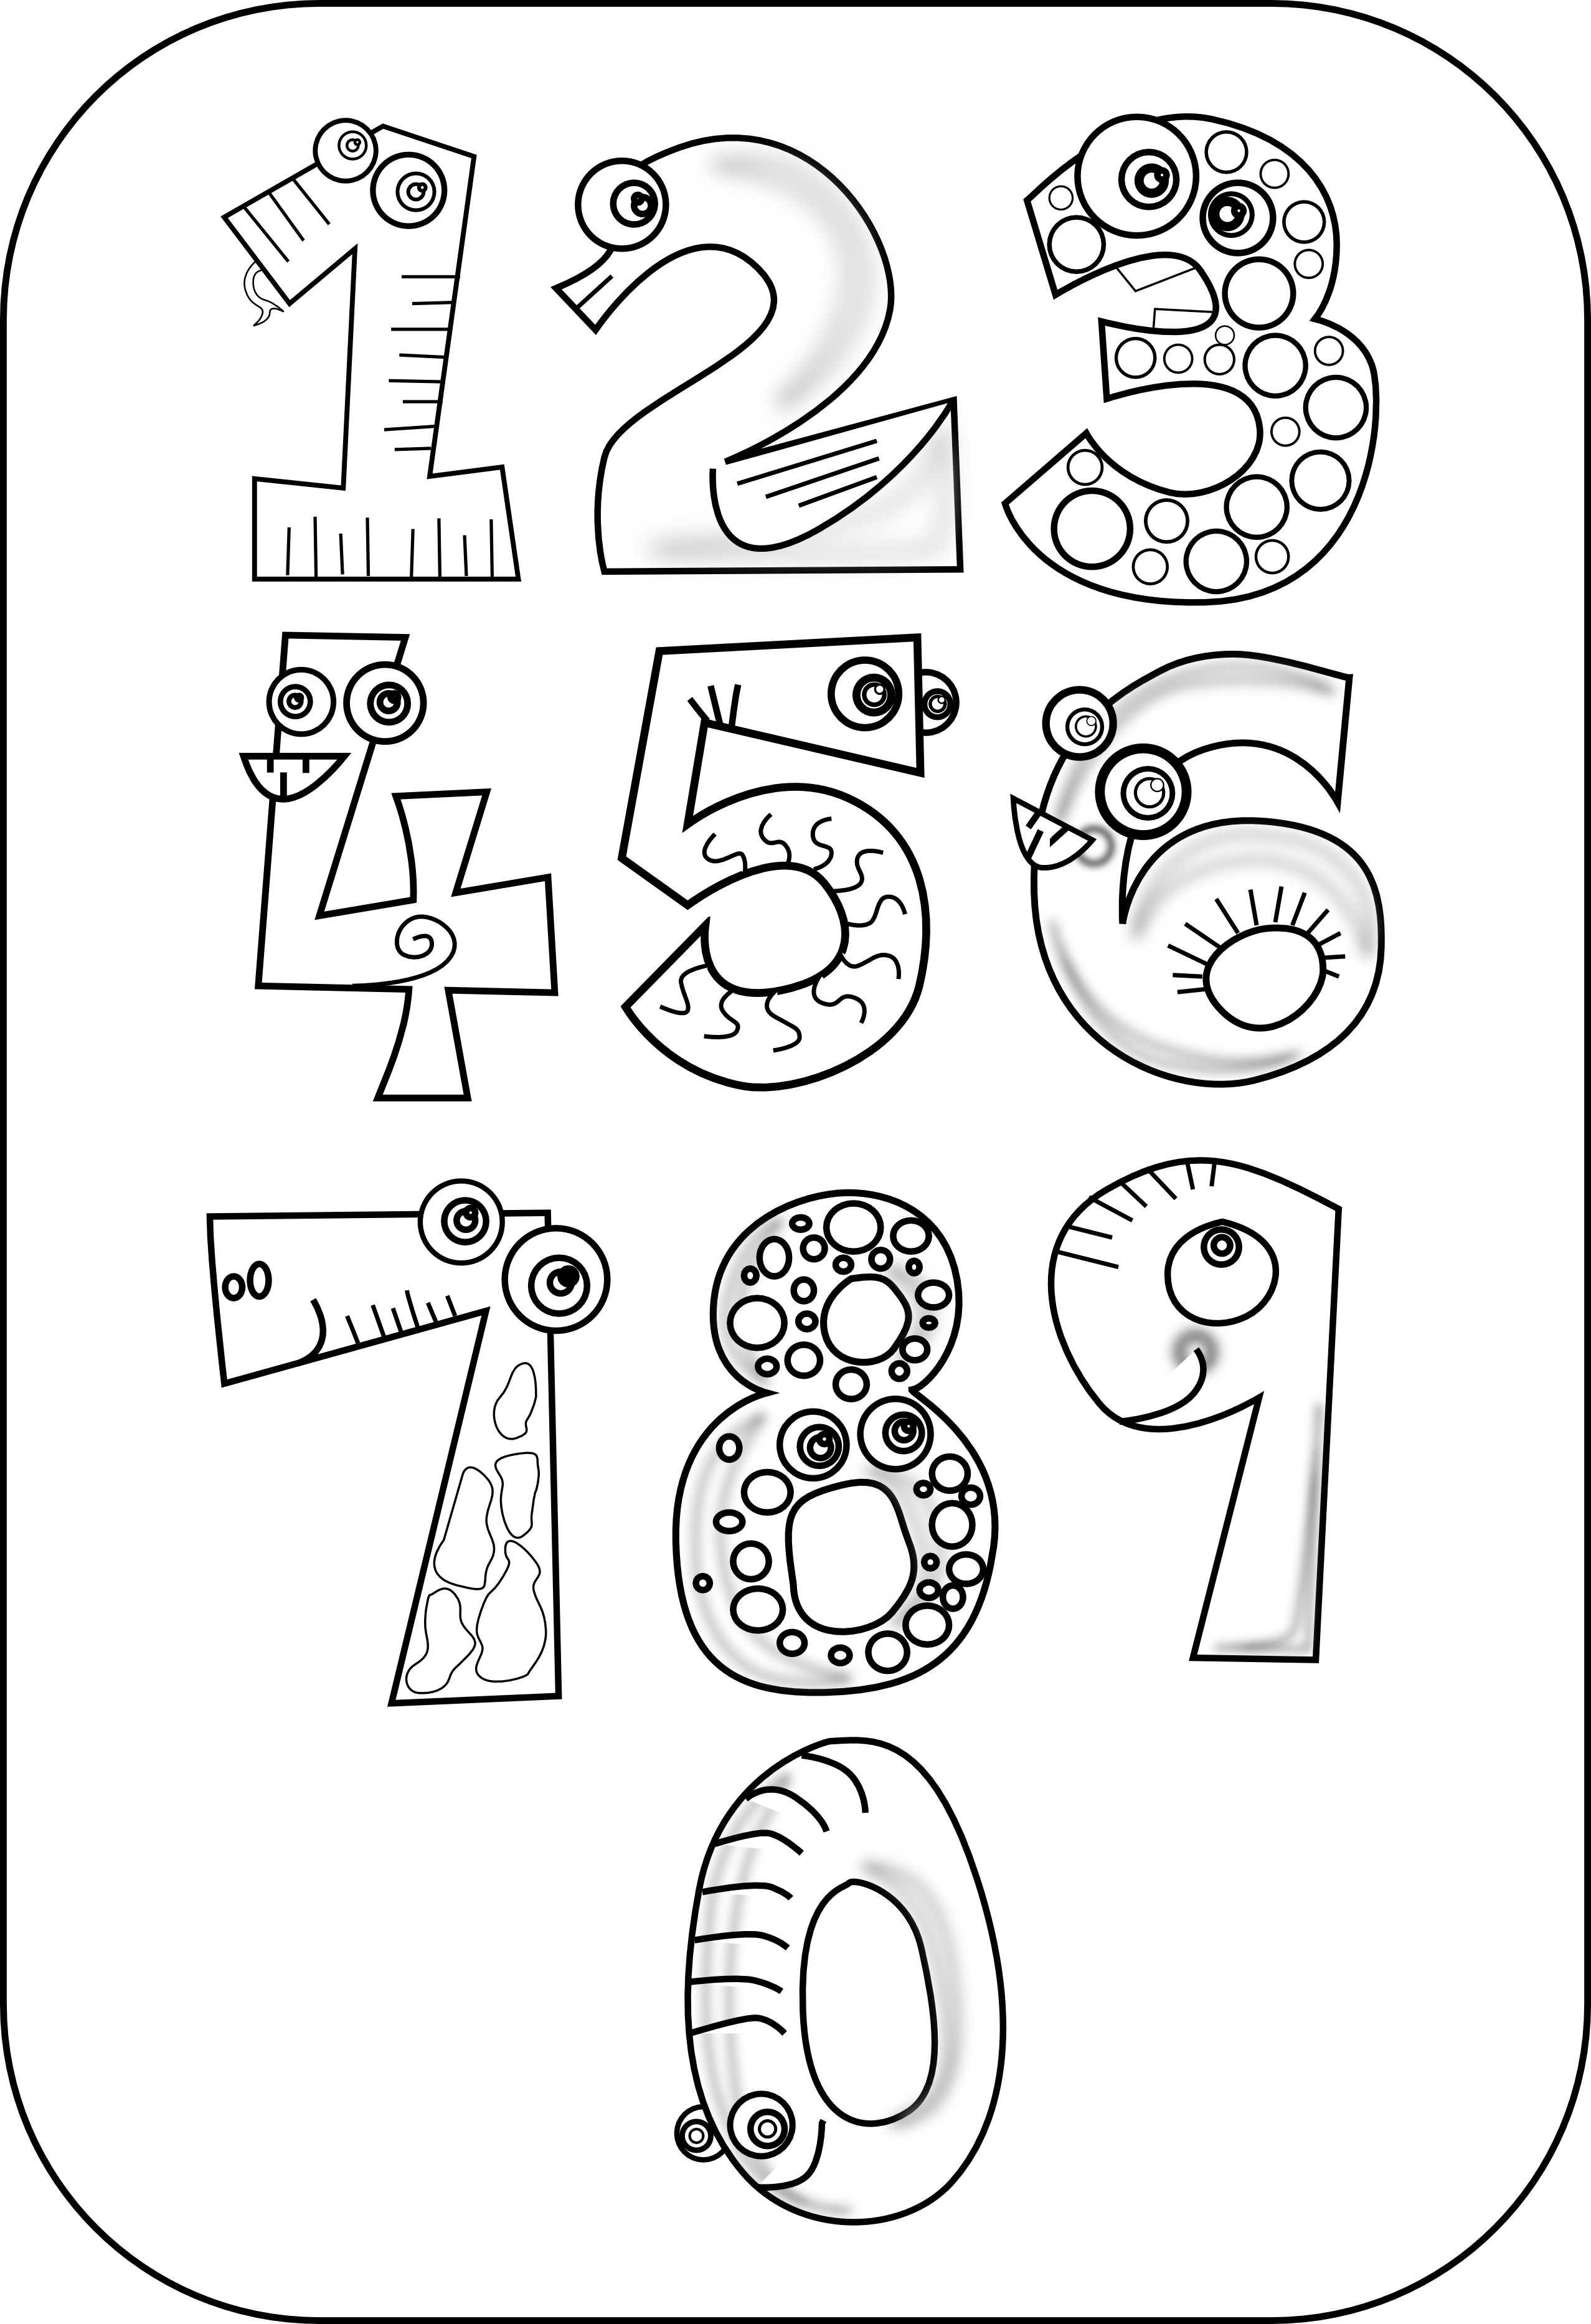 Numbers 1 10 clipart black and white graphic royalty free download Gallery For > Black and White Clipart Numbers 1 10 graphic royalty free download